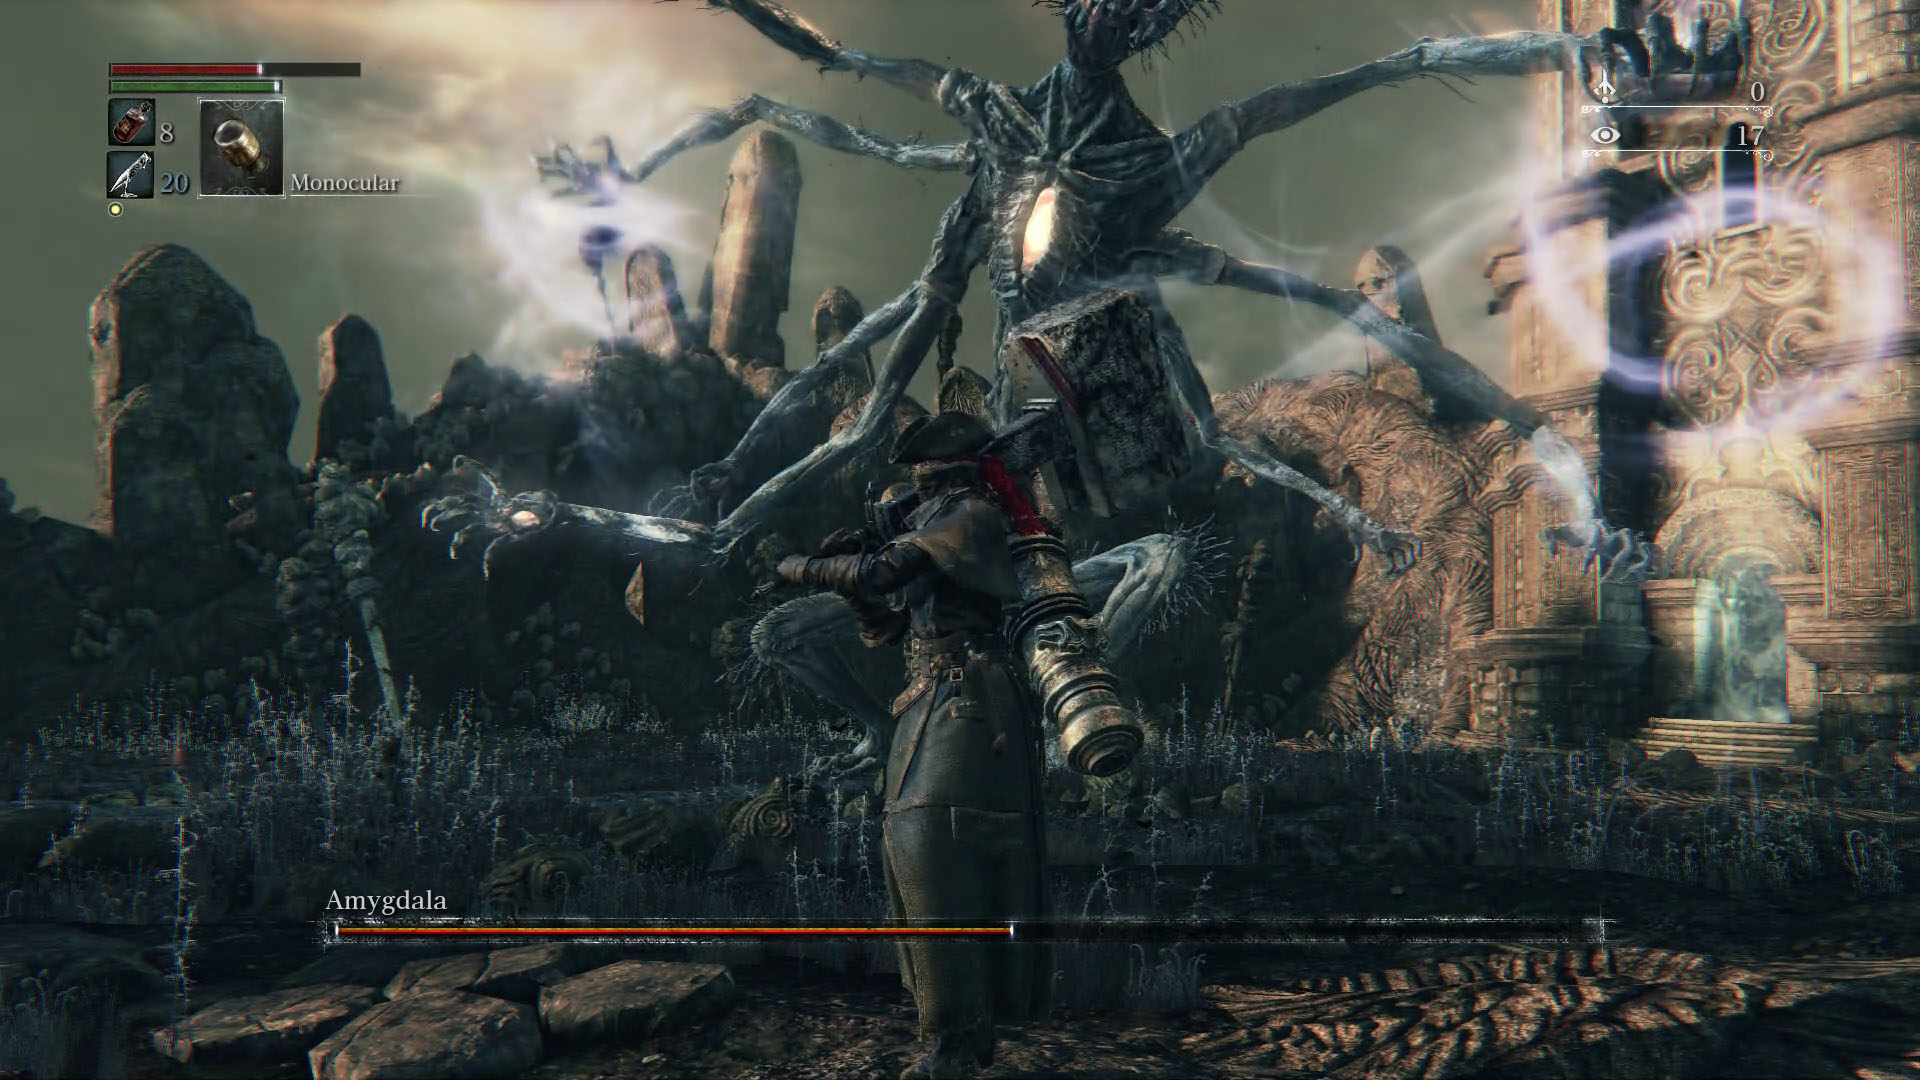 bloodborne amygdala boss how to find and kill it